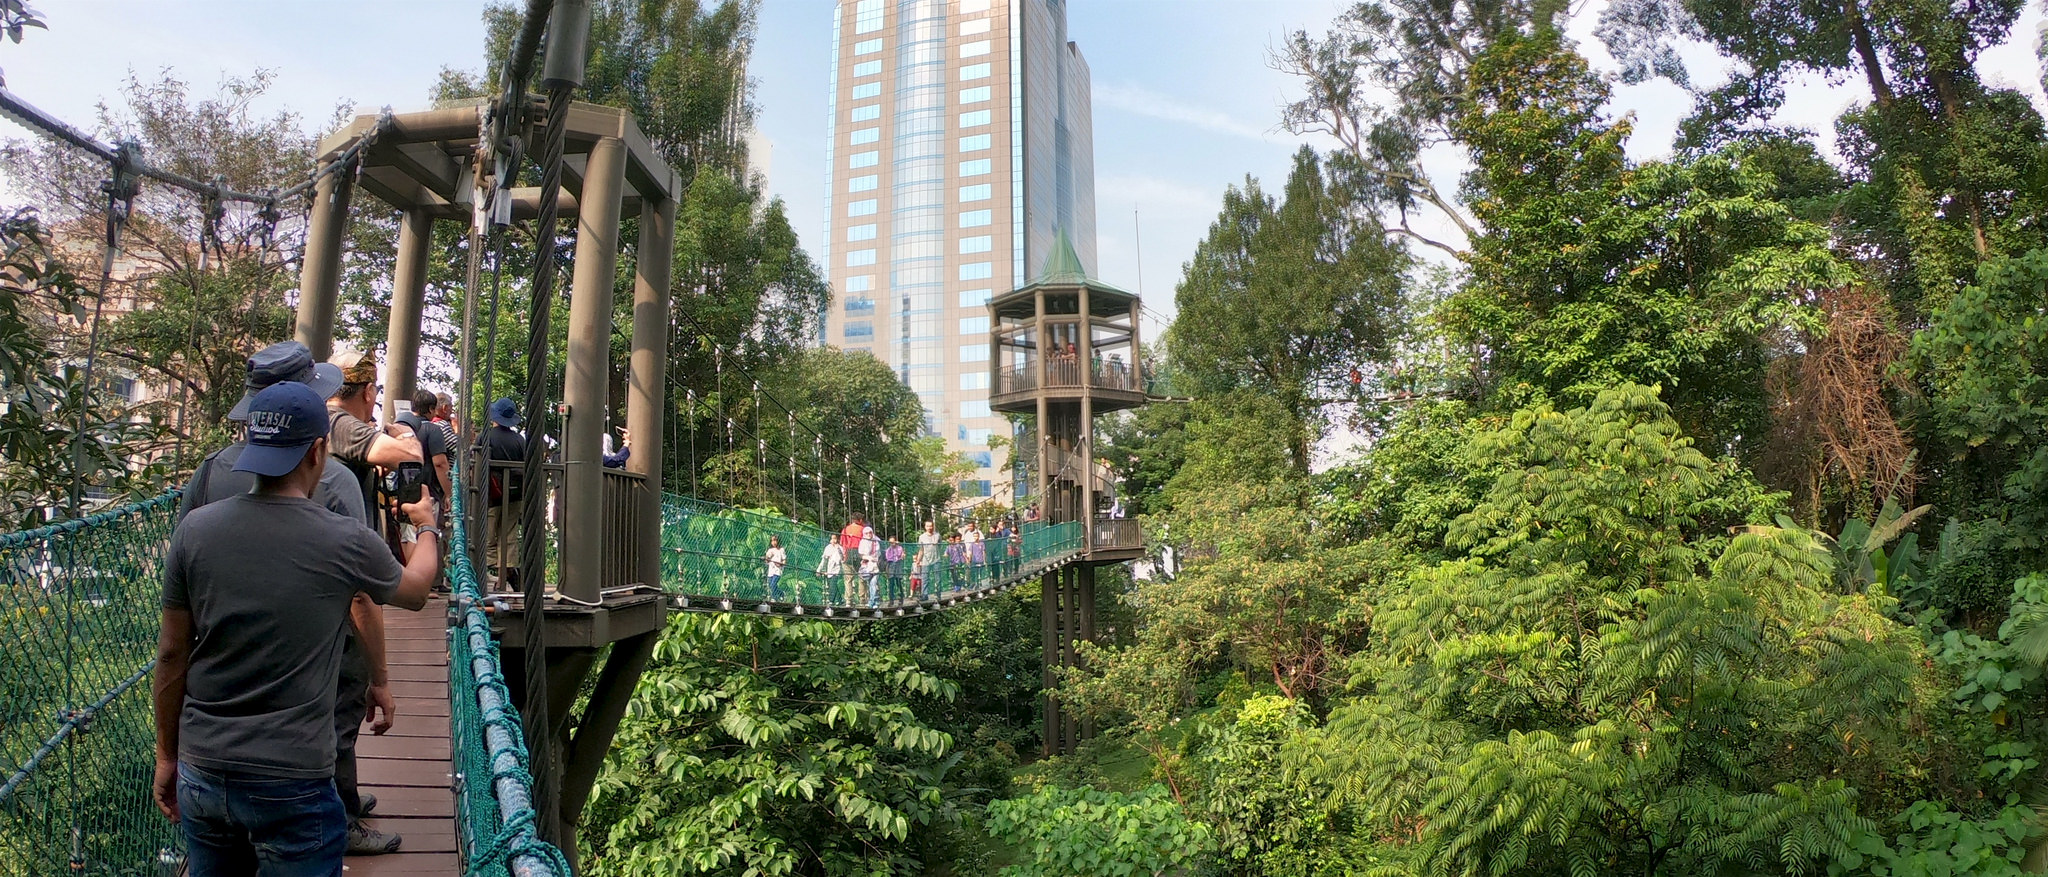 Finally arriving at the canopy walk